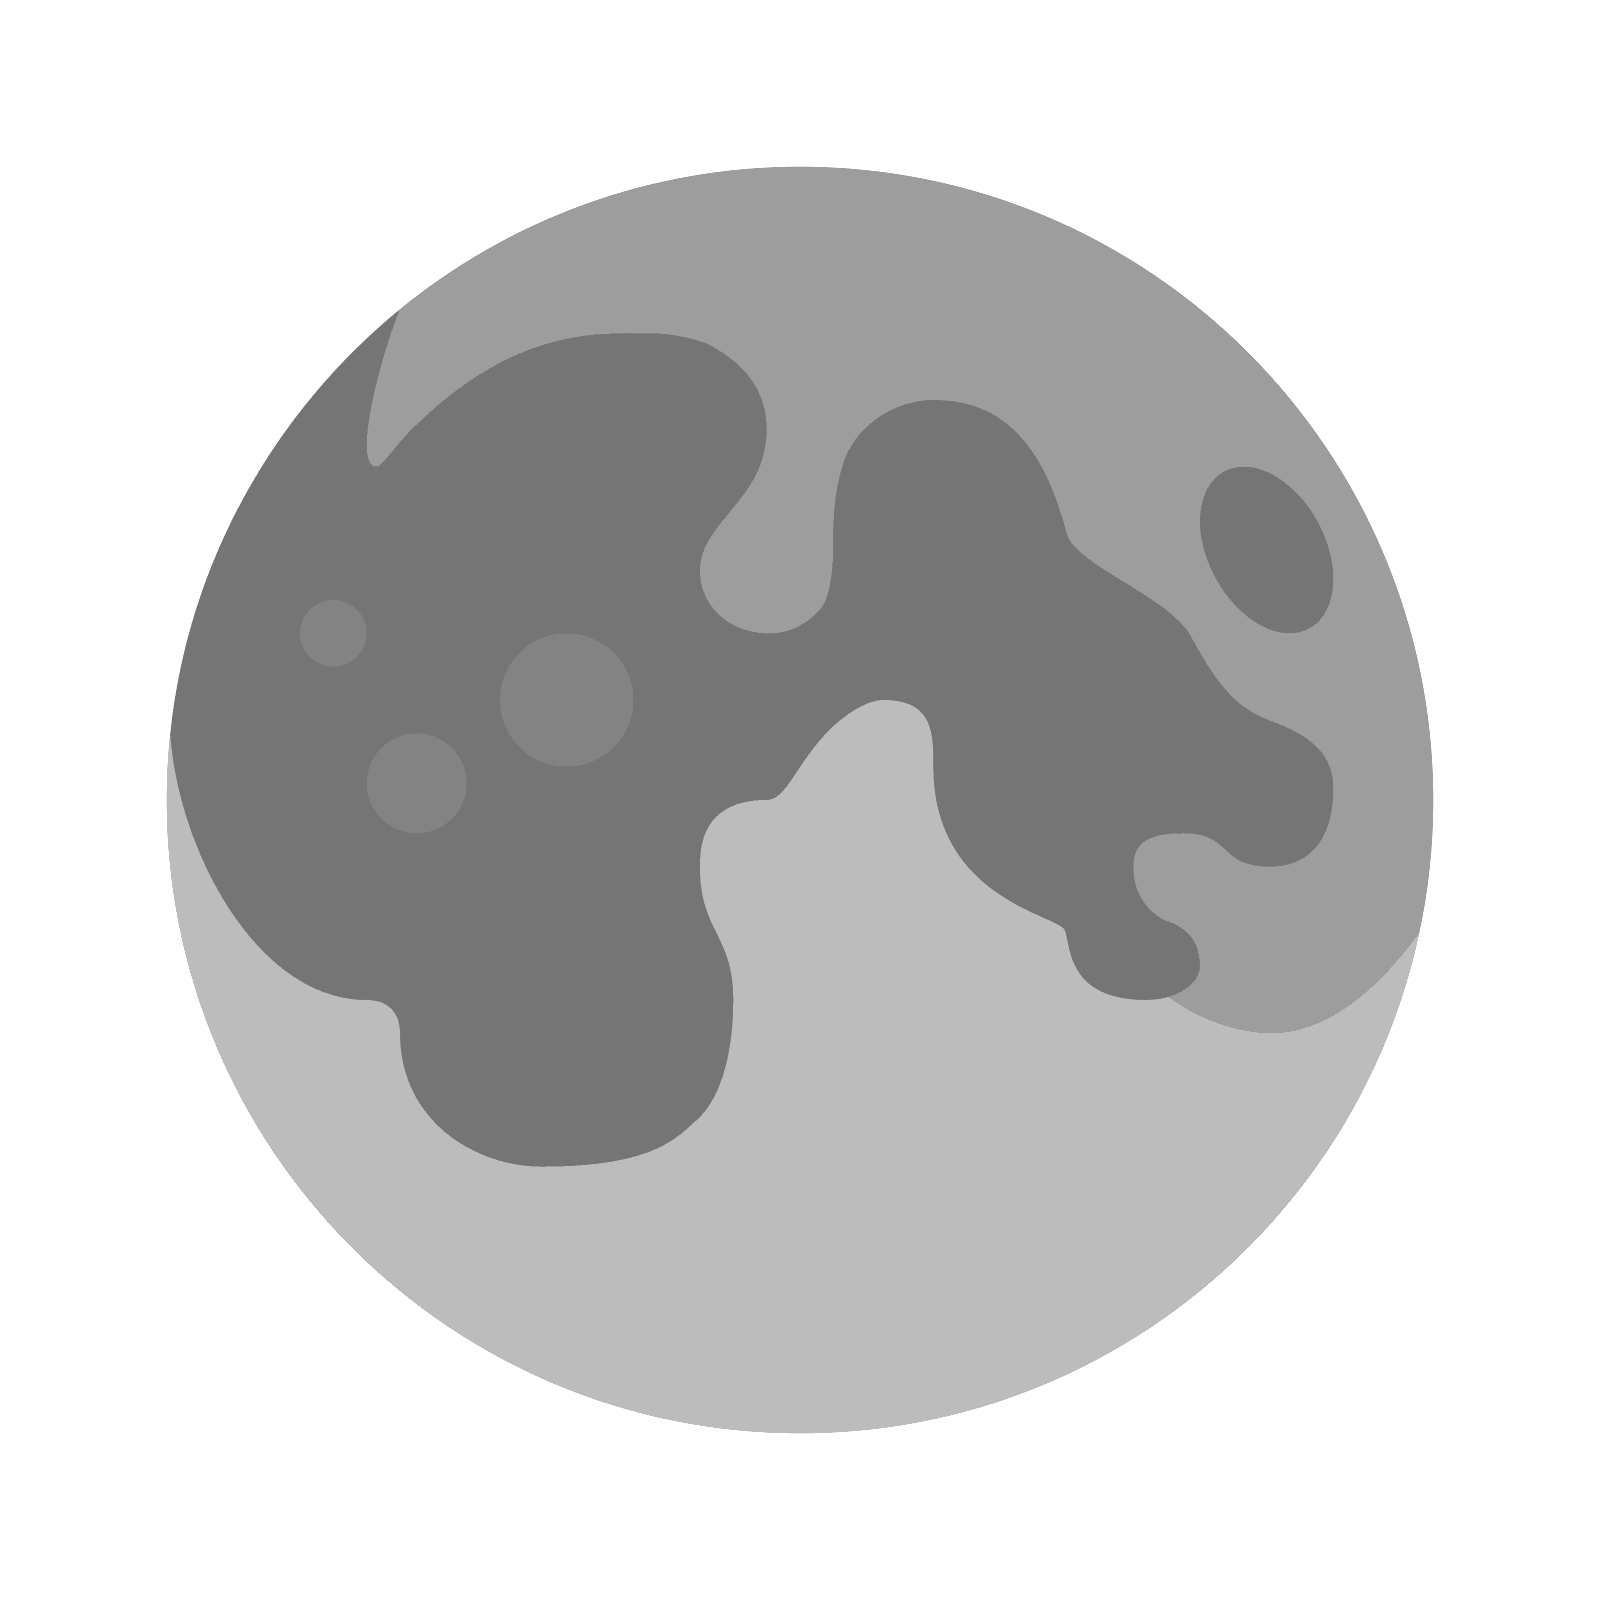 1600x1600 15 Moon Vector Png For Free Download On Mbtskoudsalg